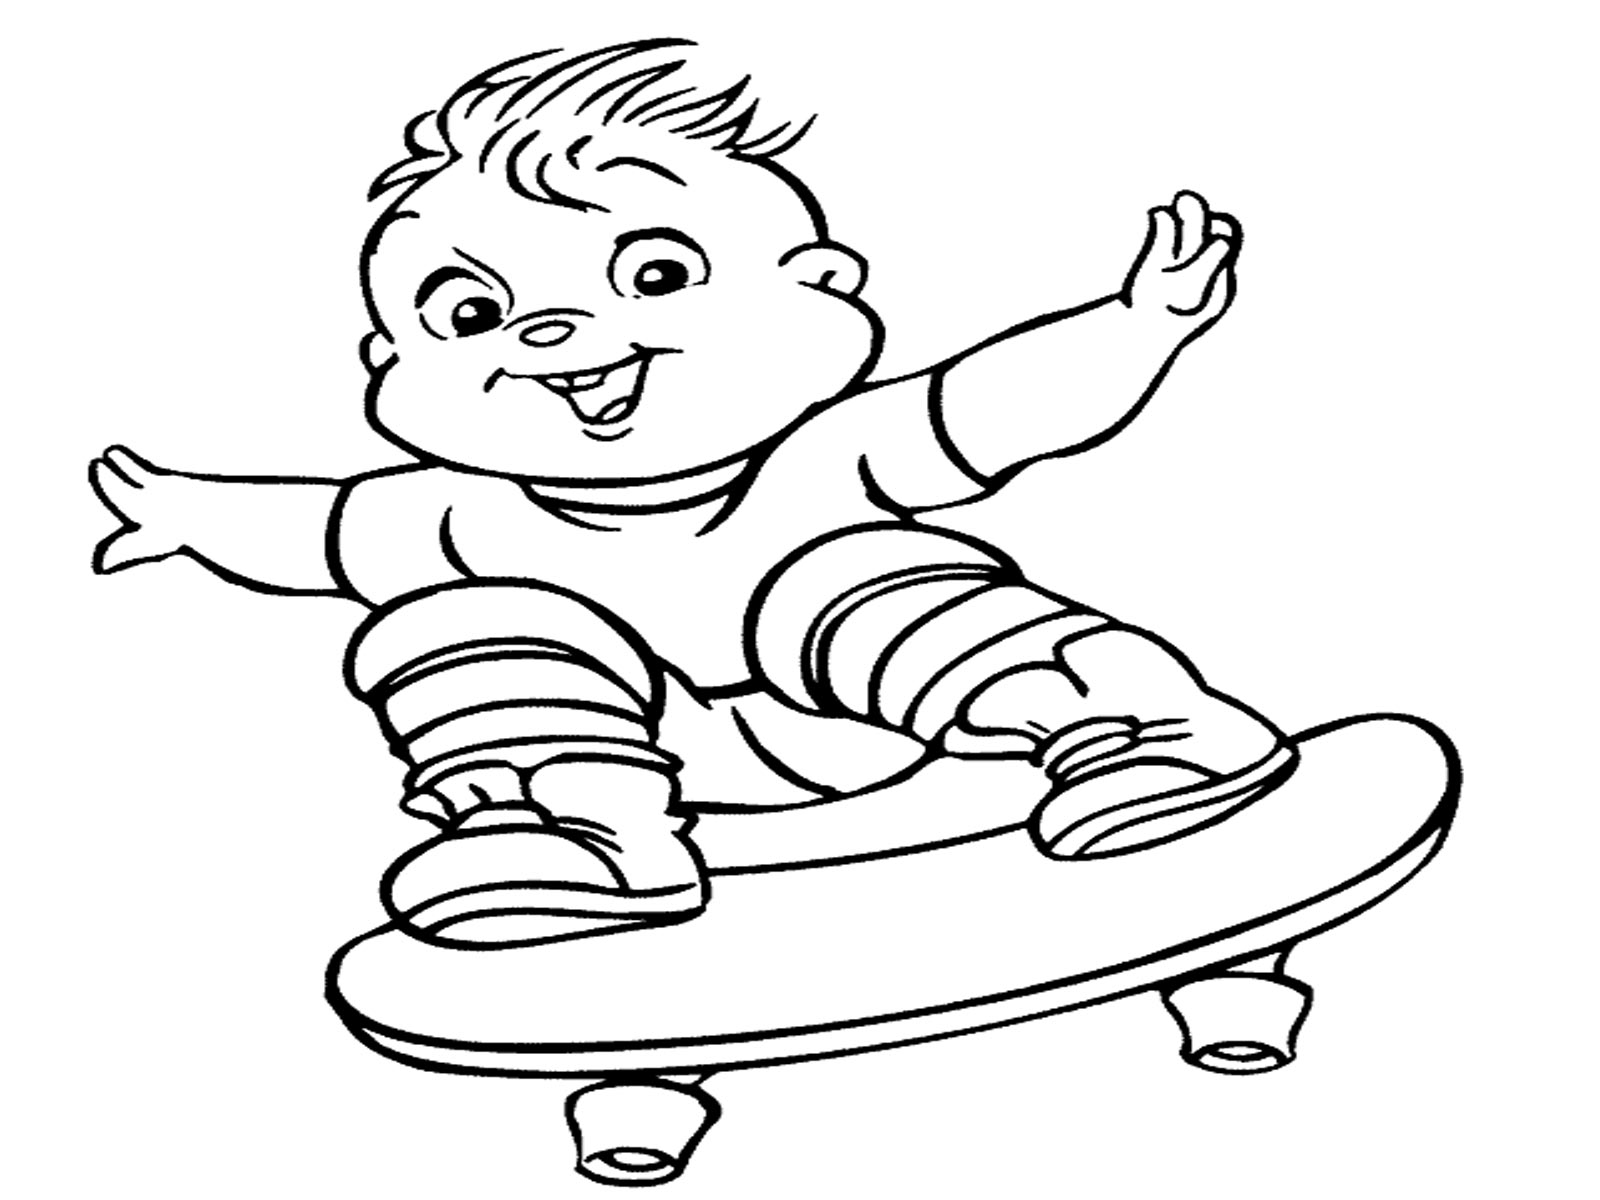 Coloring Pages Alvin And The Chipmunks 2 - Coloring Home